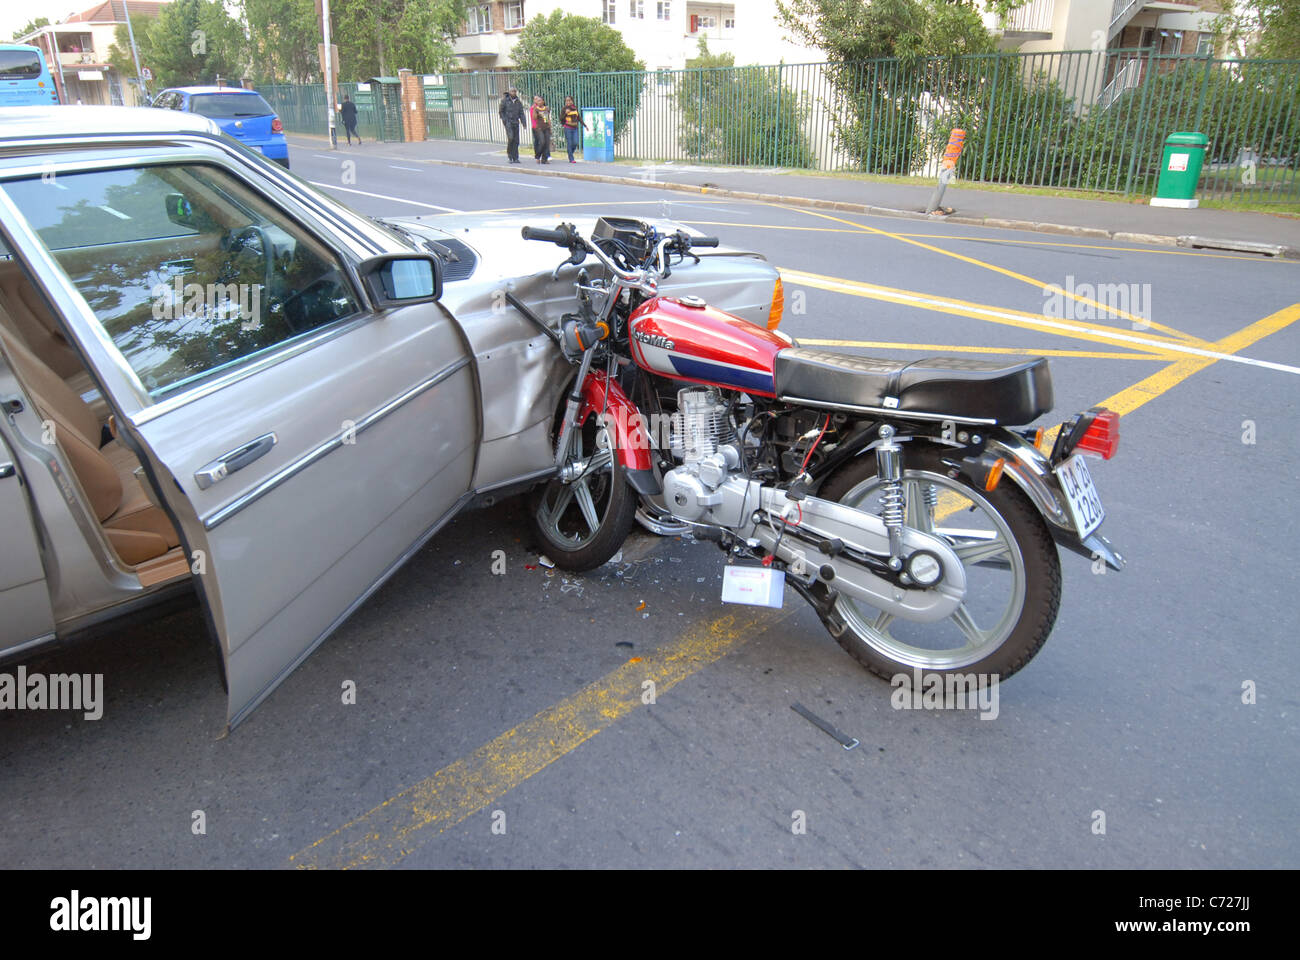 Accident between a car and motorcycle at an intersection on Main rd ...